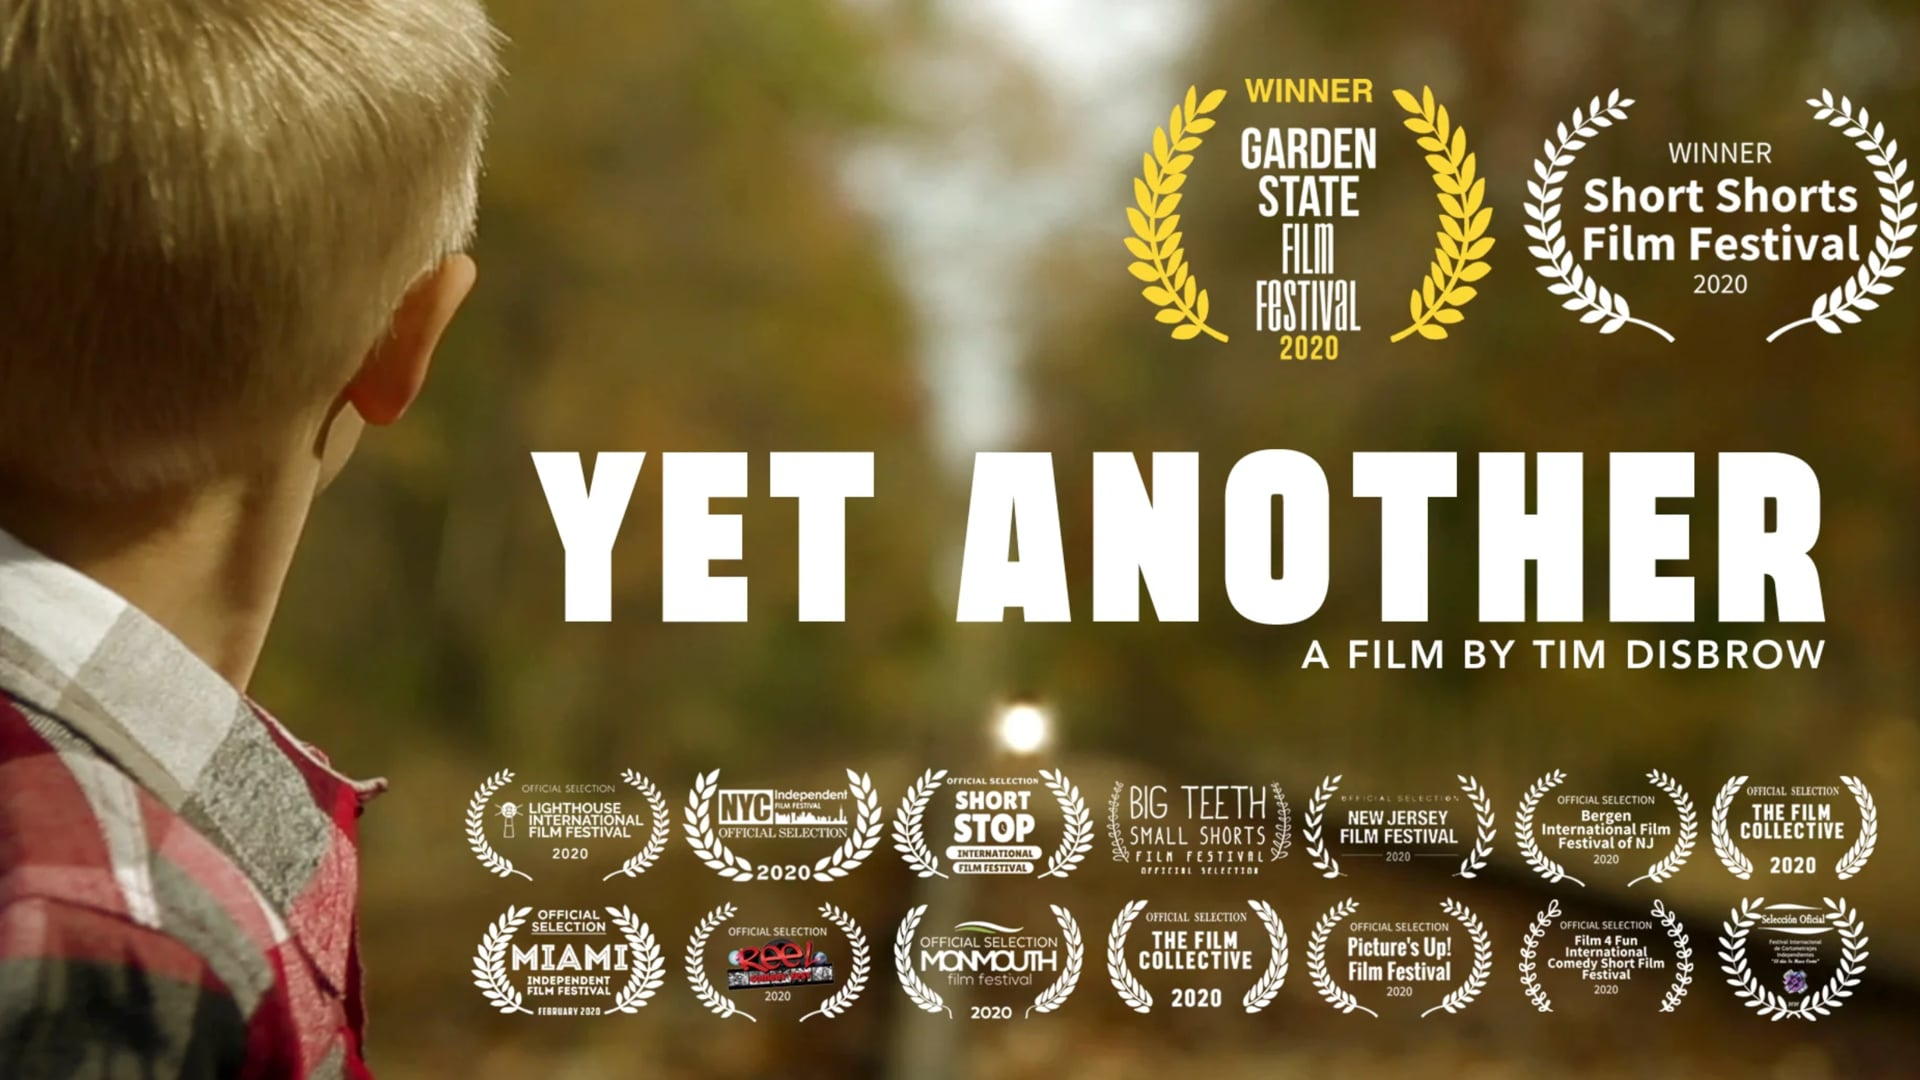 Yet Another - Directed by Tim Disbrow